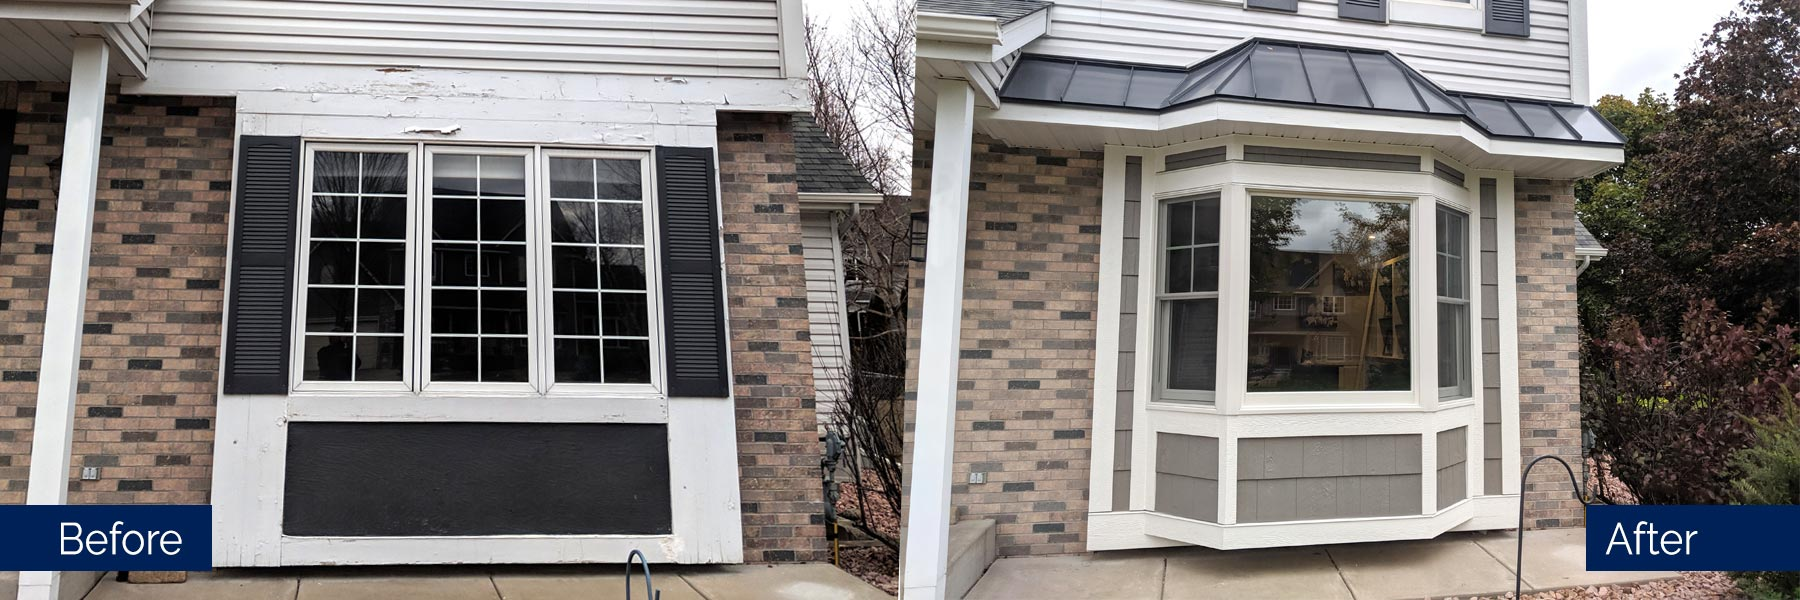 Exterior Window Before and After